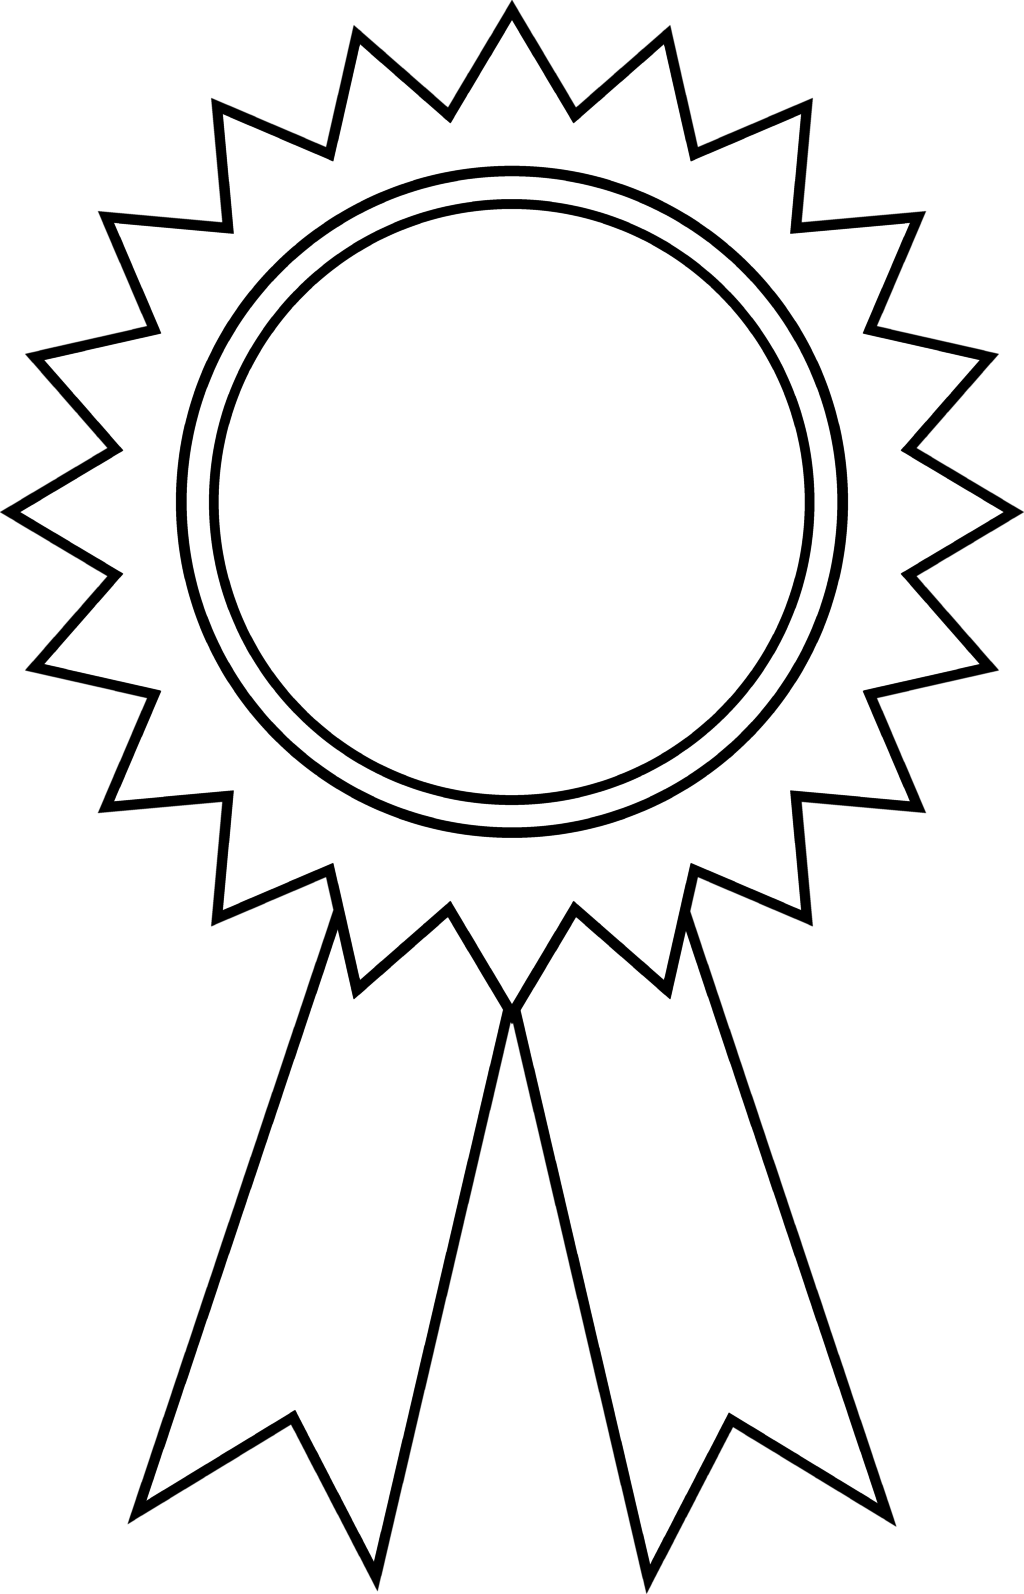 graphic relating to Printable Ribbon identify Printable Award Ribbons Free of charge obtain simplest Printable Award